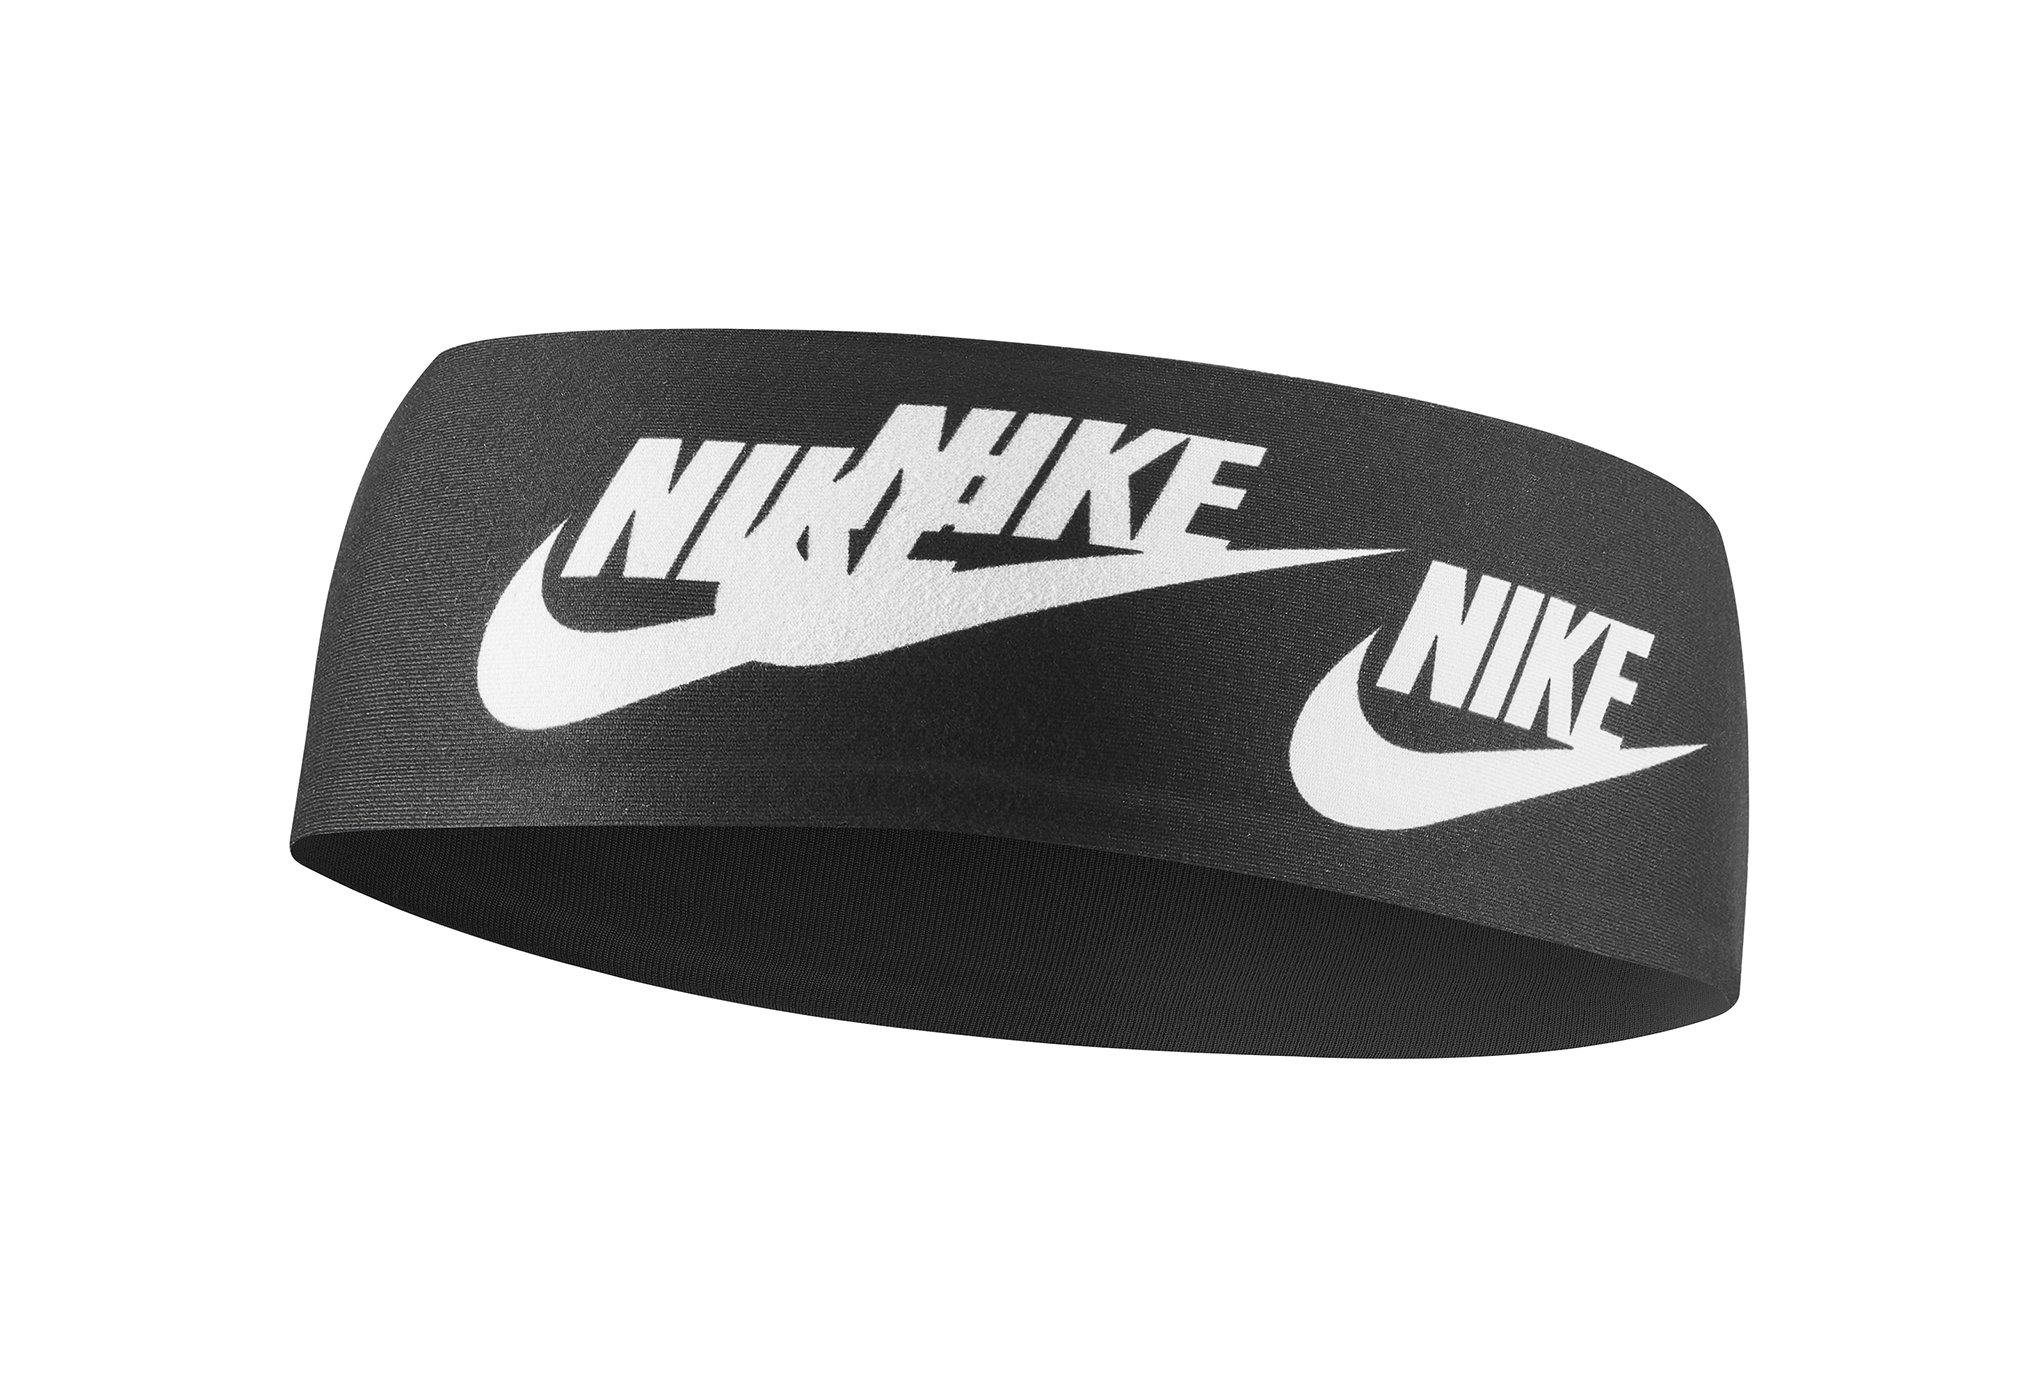 Nike Dri-Fit World Tour Fury M Casquettes / bandeaux